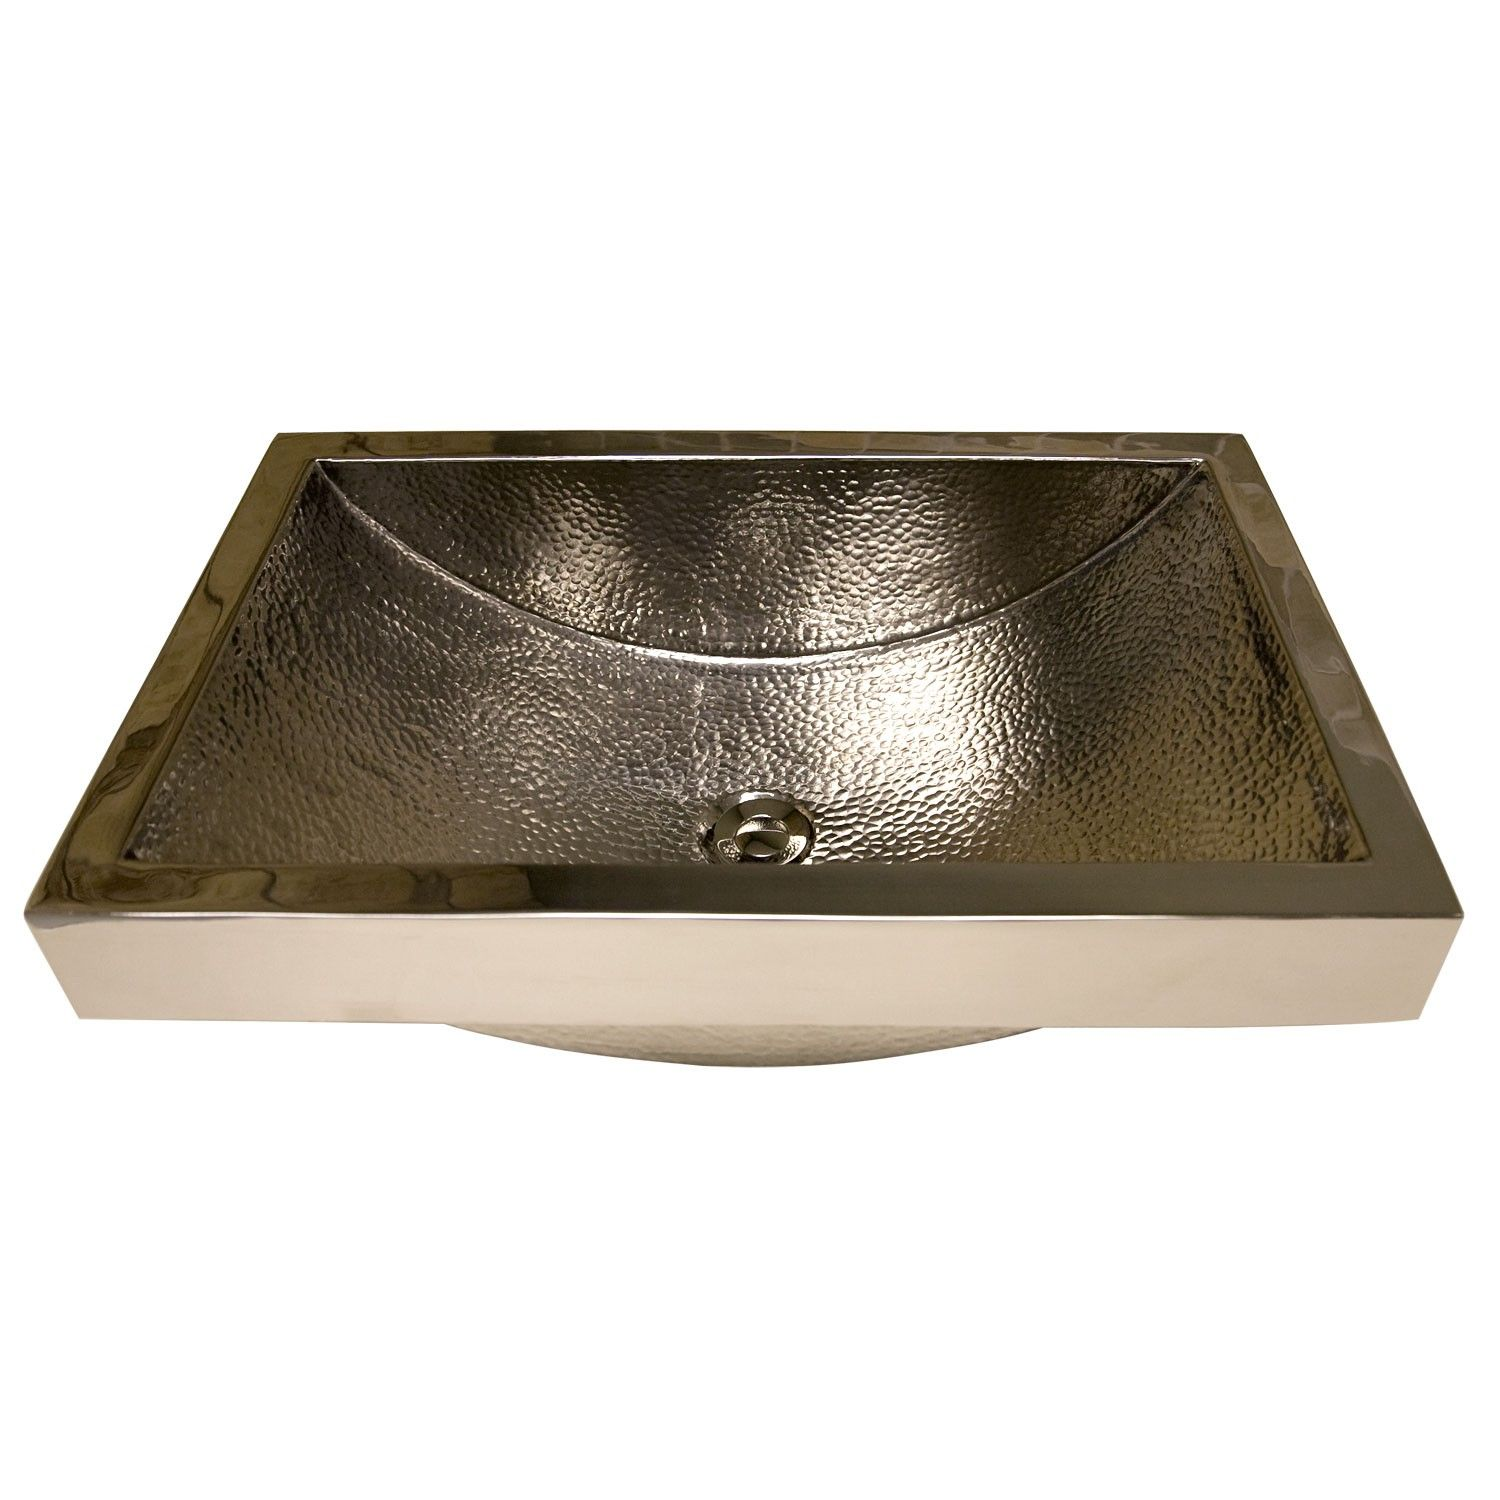 Rossi Hammered Brass Semi Recessed Sink   Polished Nickel   Bathroom Sinks    Bathroom